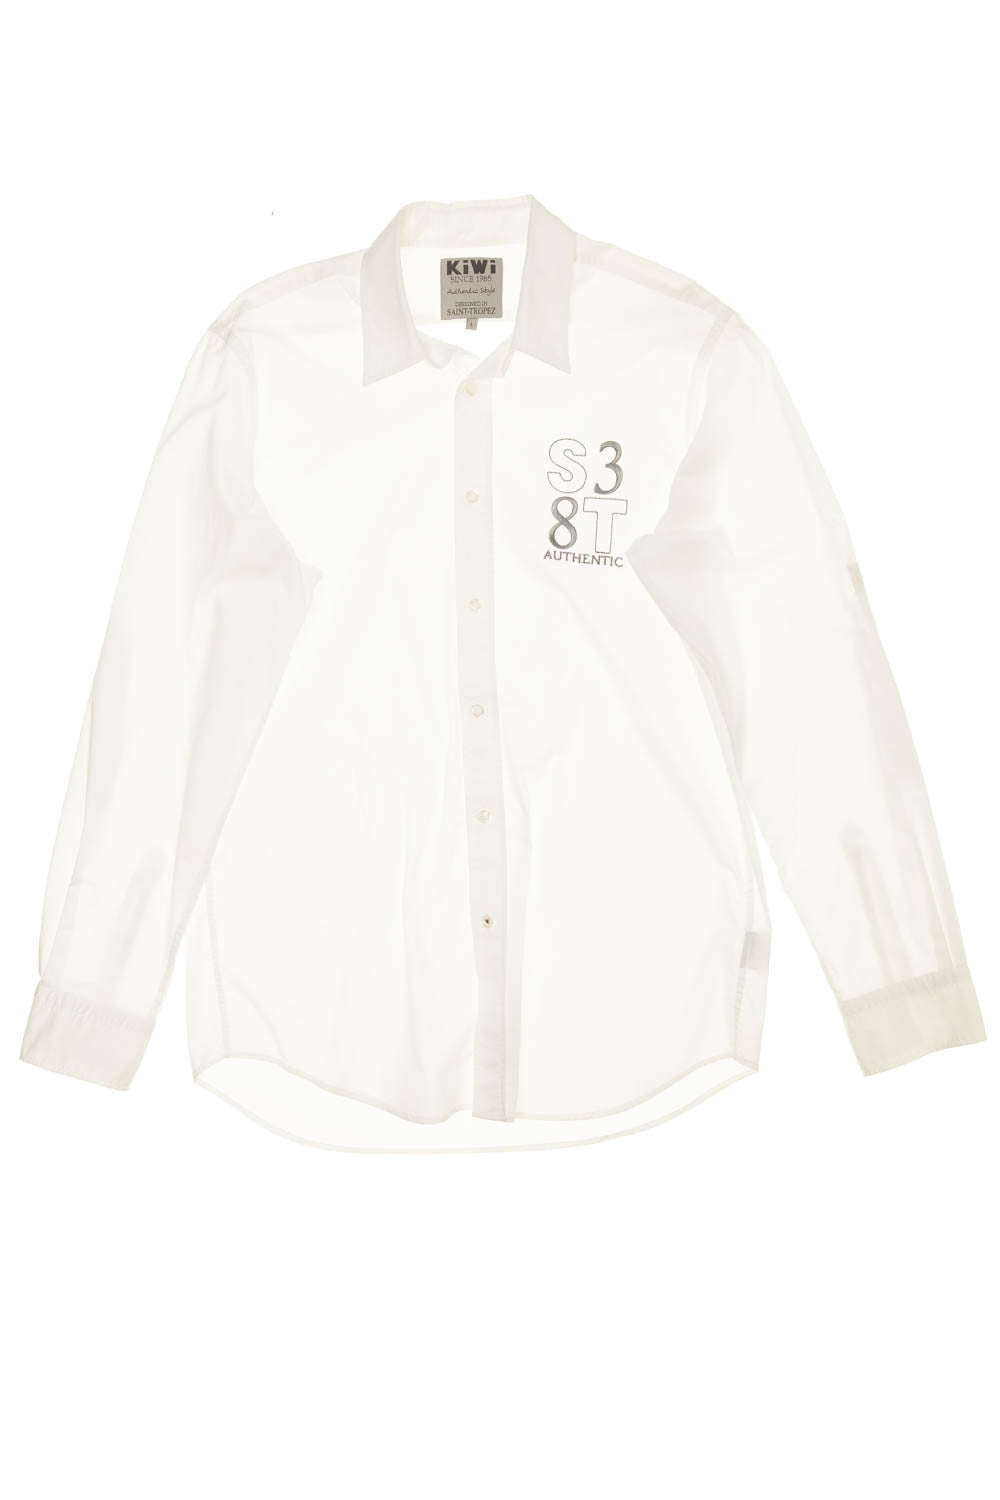 KiWi - White Long Sleeve Button Up Blouse - L - $45